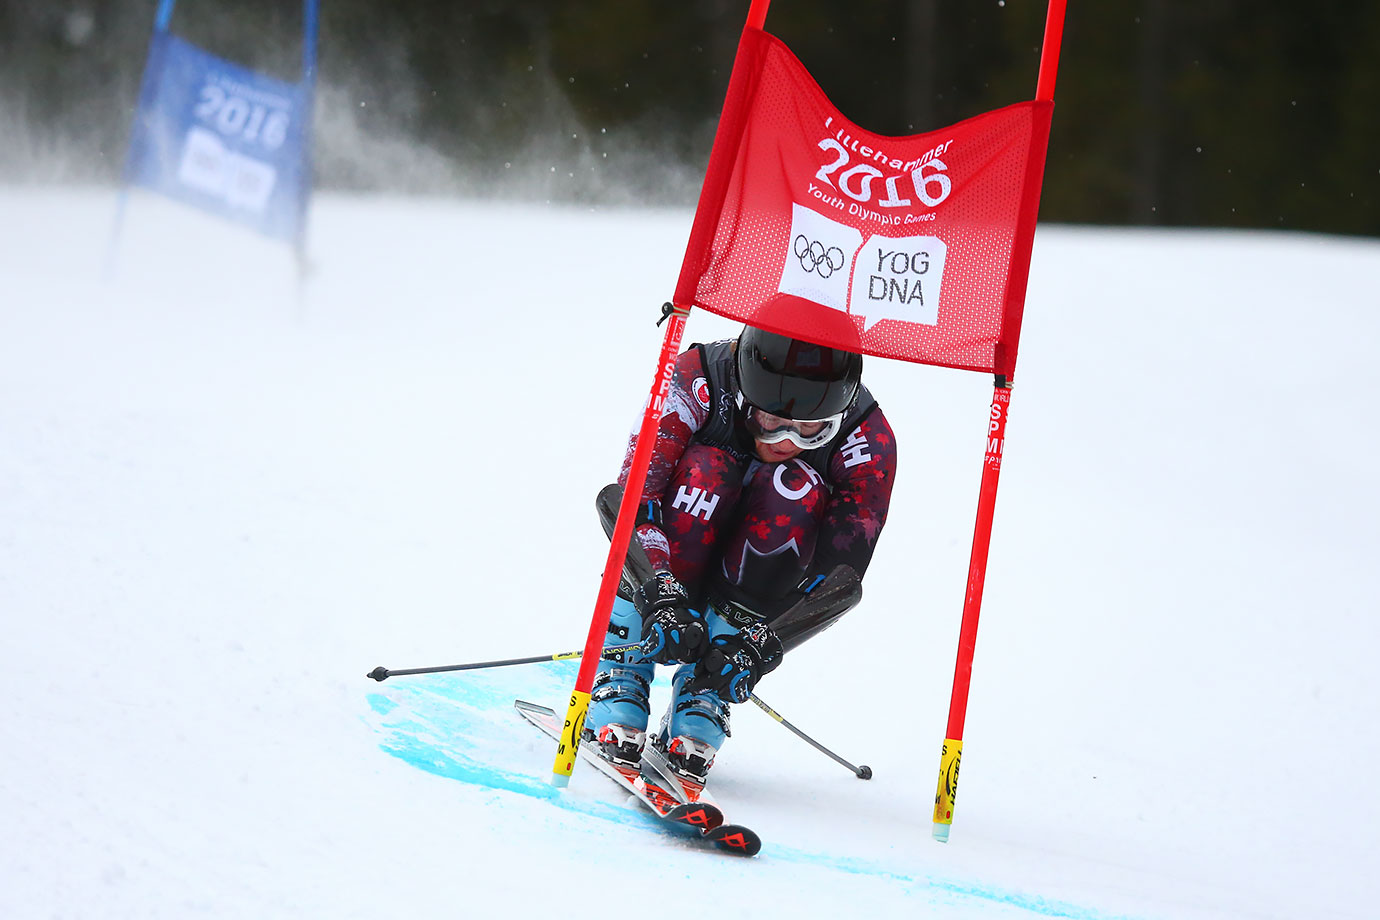 Ryan Moffat (CAN) competes in the Alpine Skiing Men's Giant Slalom at the Hafjell Olympic Slope on Feb. 17, 2016 during the Winter Youth Olympic Games in Lillehammer, Norway.